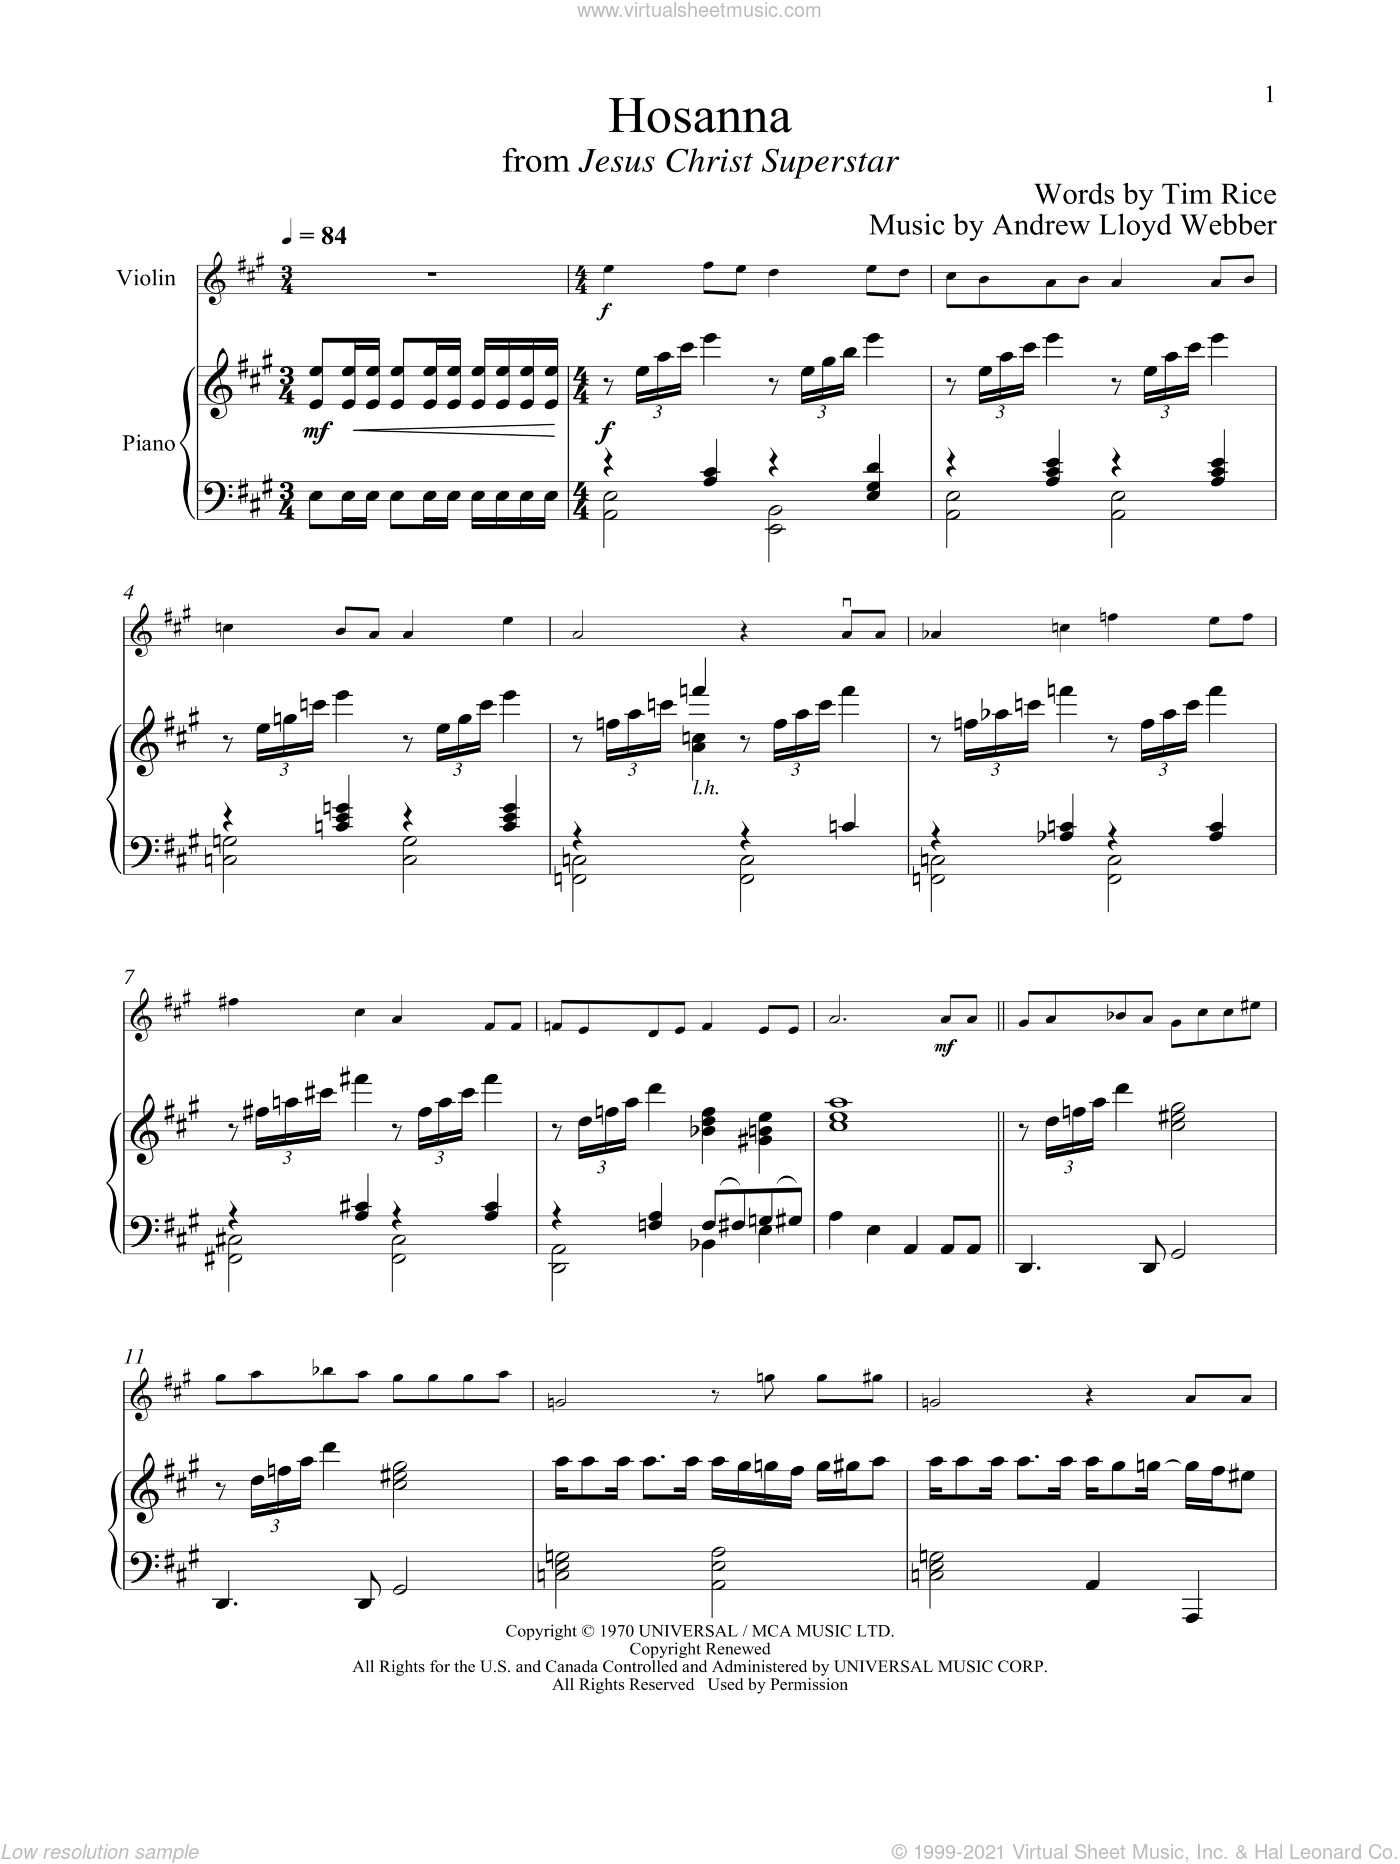 Hosanna (from Jesus Christ Superstar) sheet music for violin and piano by Andrew Lloyd Webber and Tim Rice, intermediate skill level